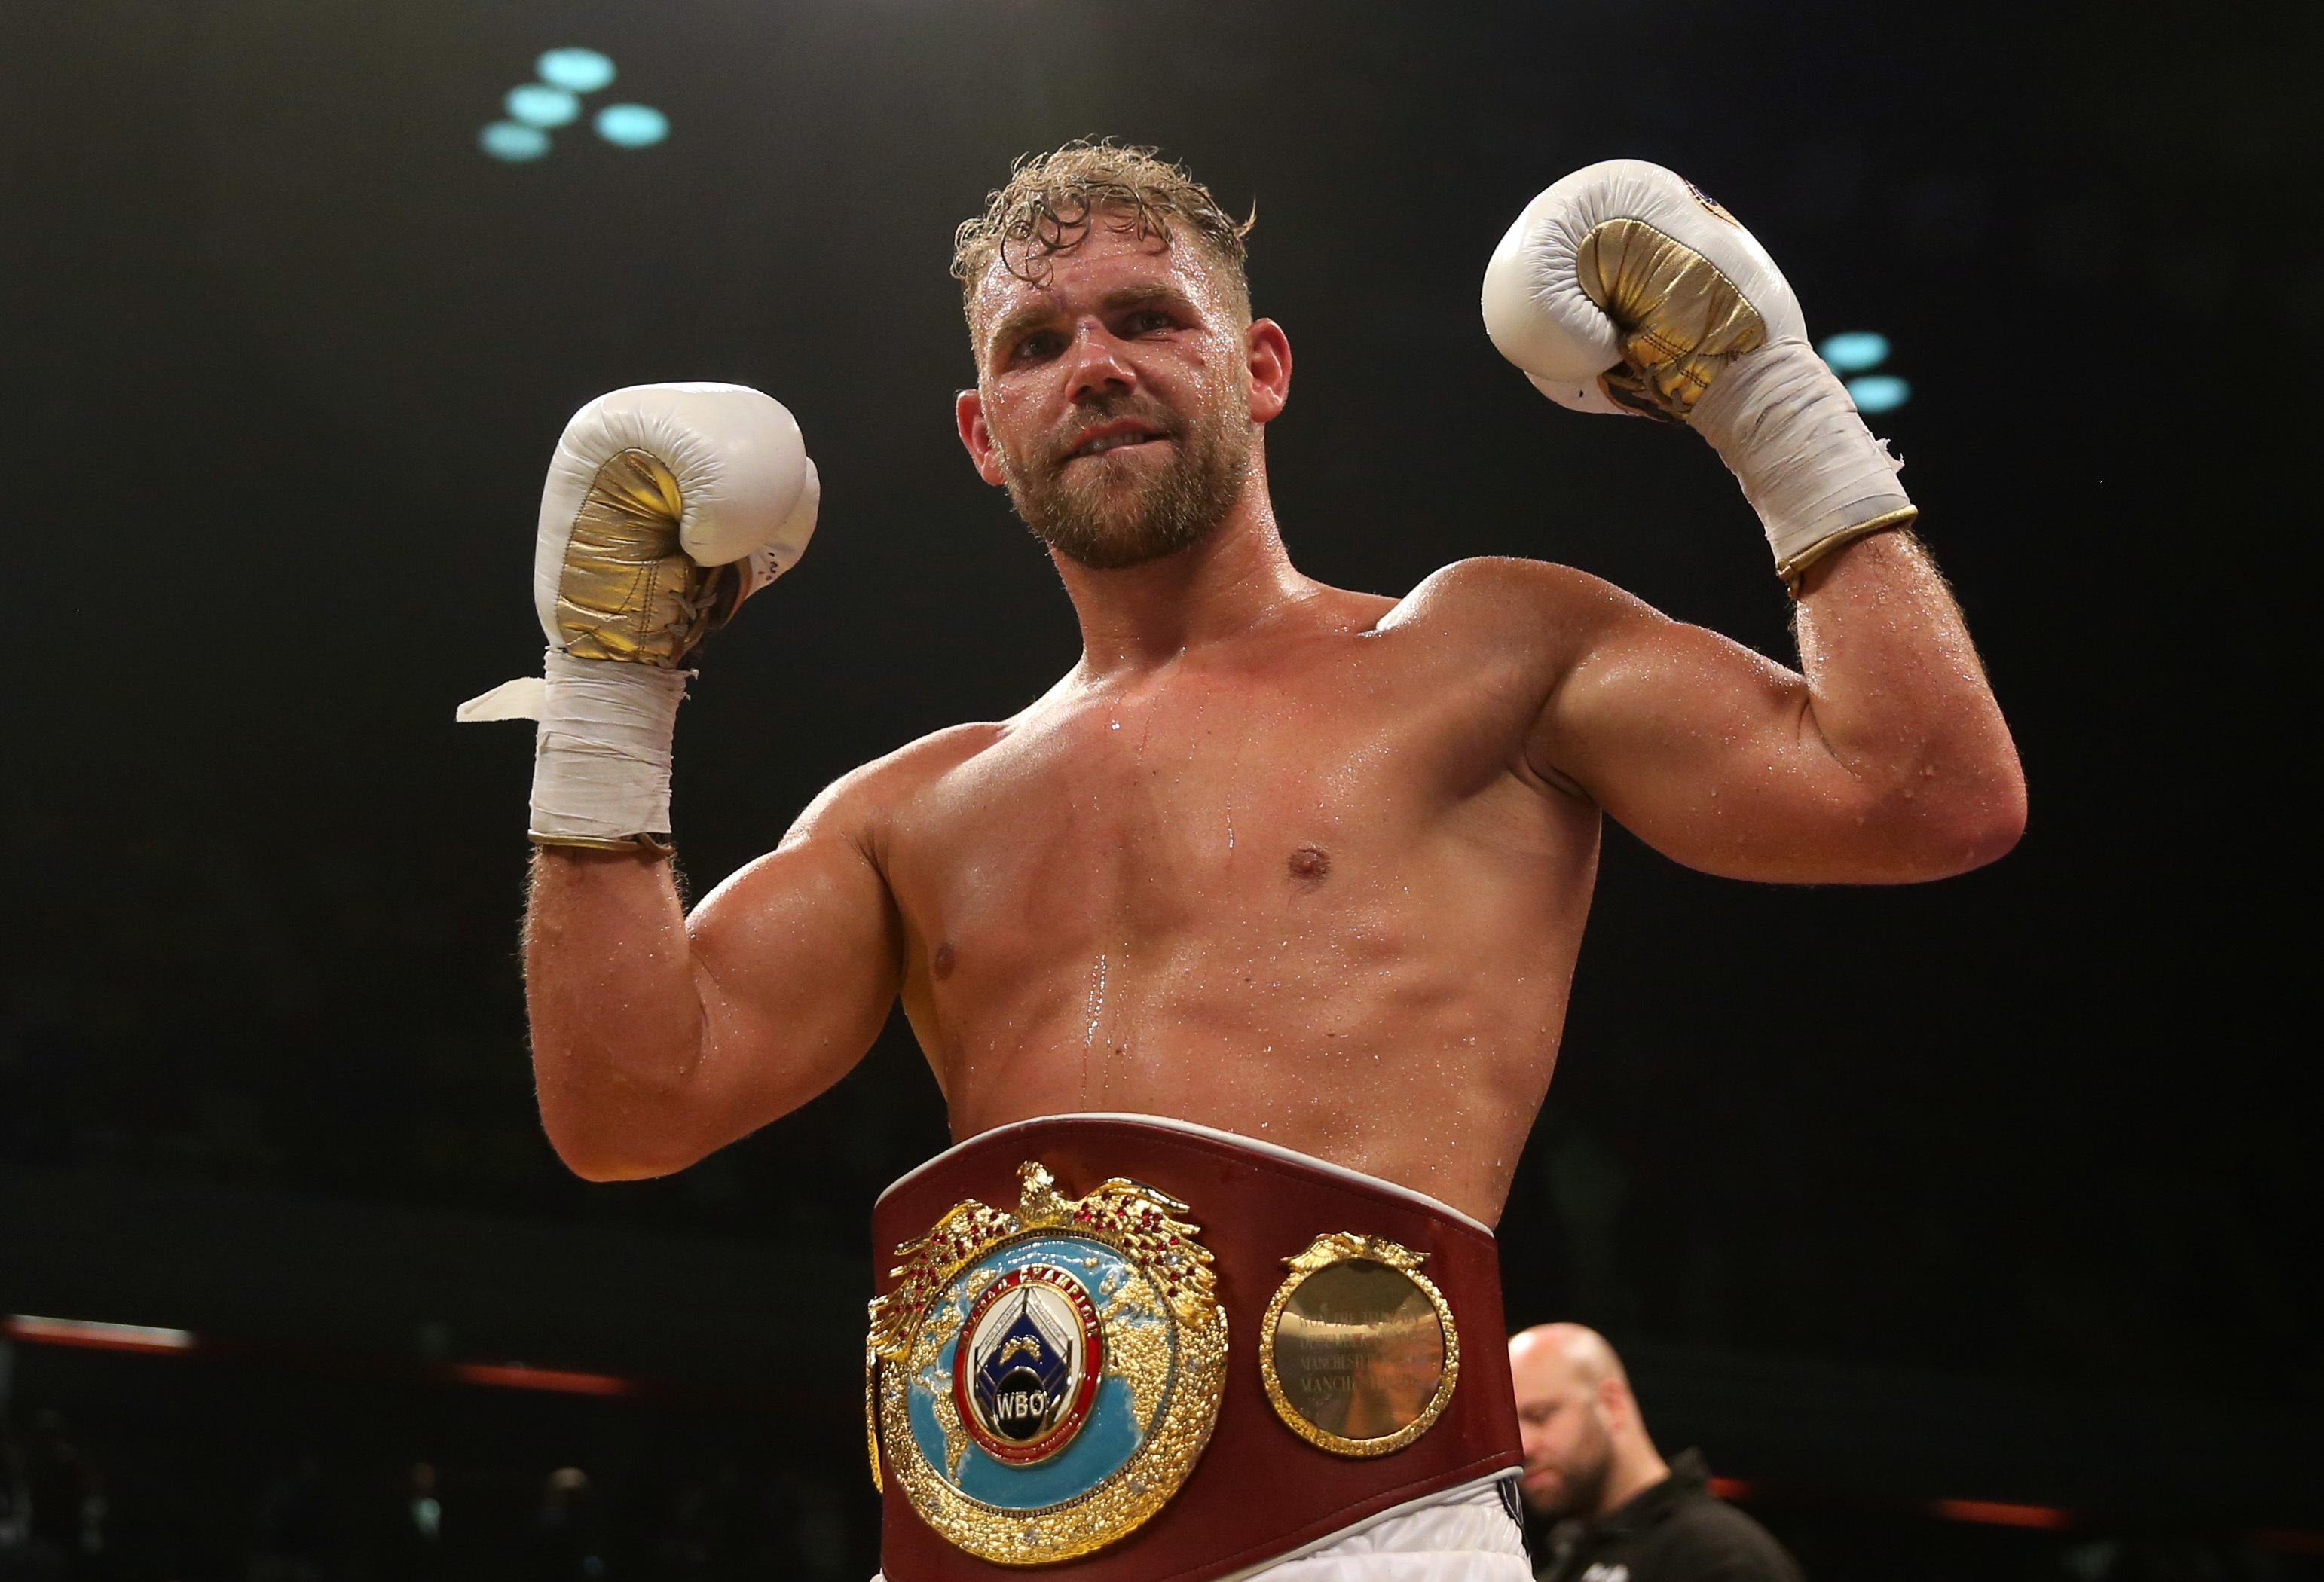 Billy Joe Saunders is the WBO middleweight champ - but pulled out of two title defences against Martin Murray